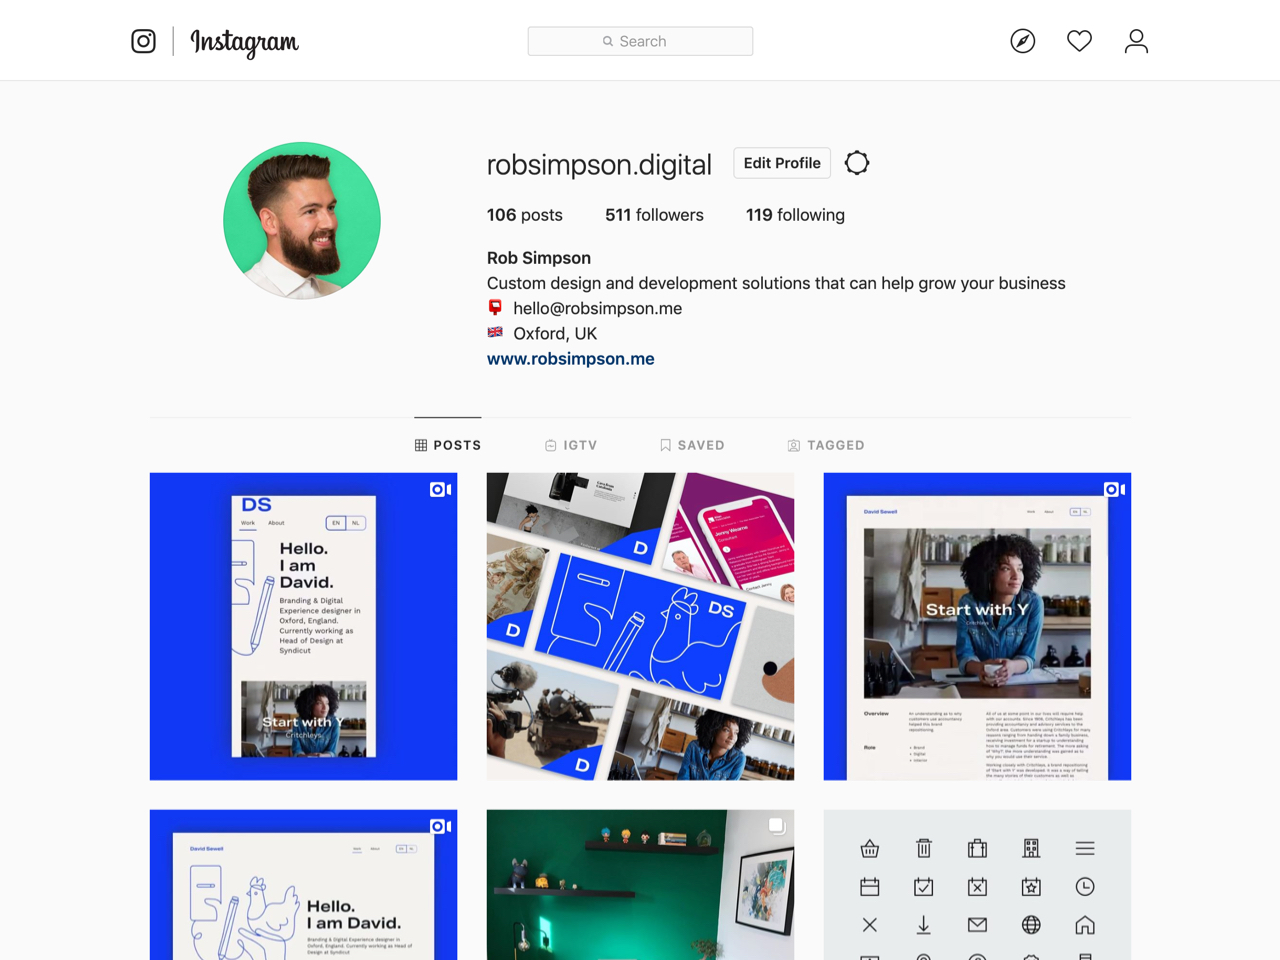 Rob Simpson Instagram profile page